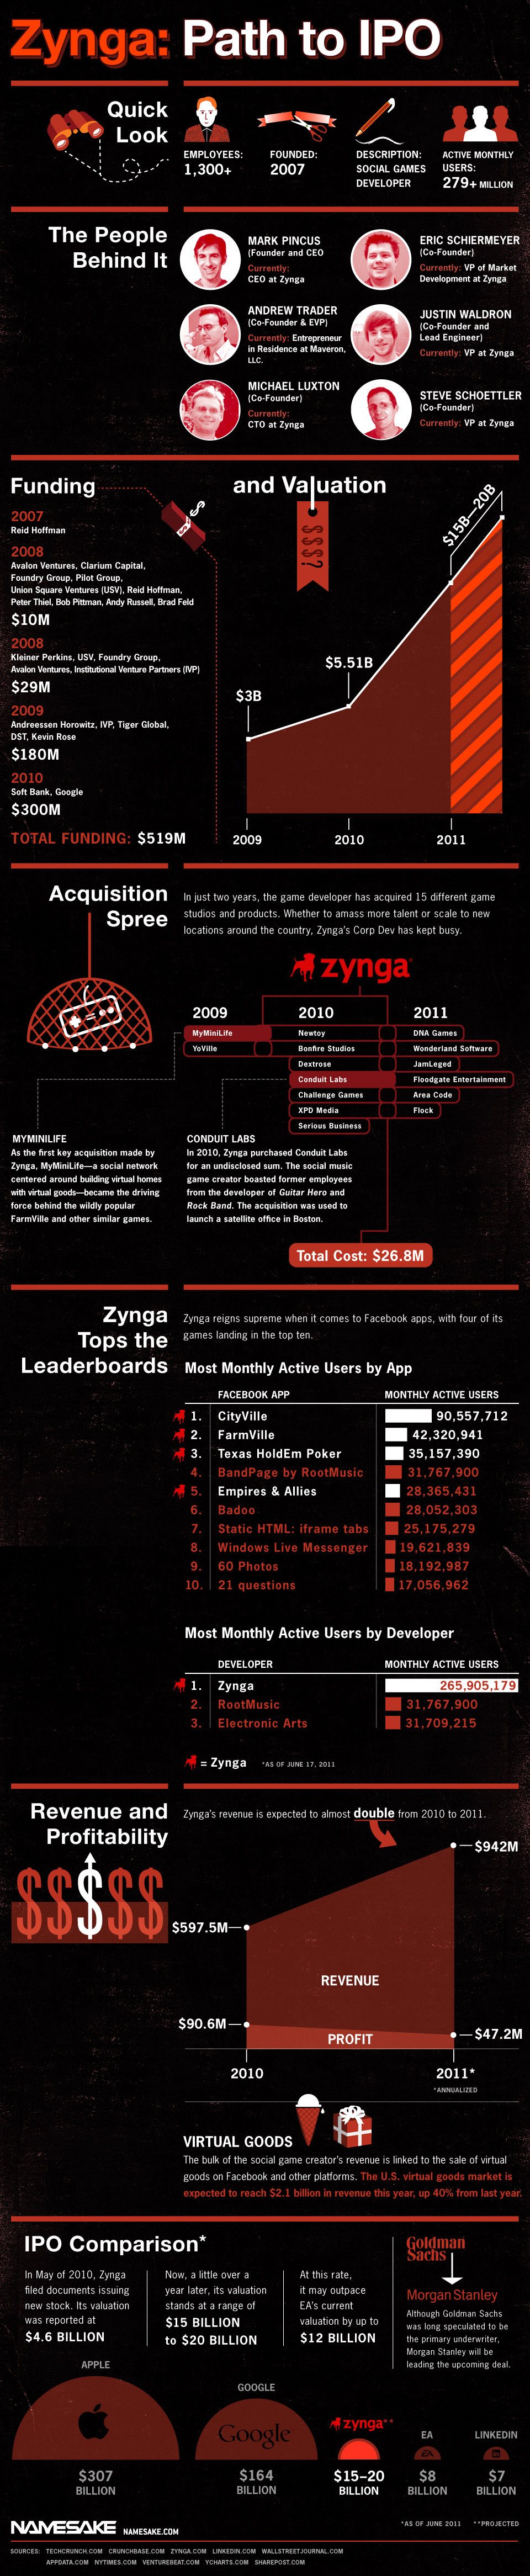 Road to Riches Zynga's Path to IPO Infographic, Social